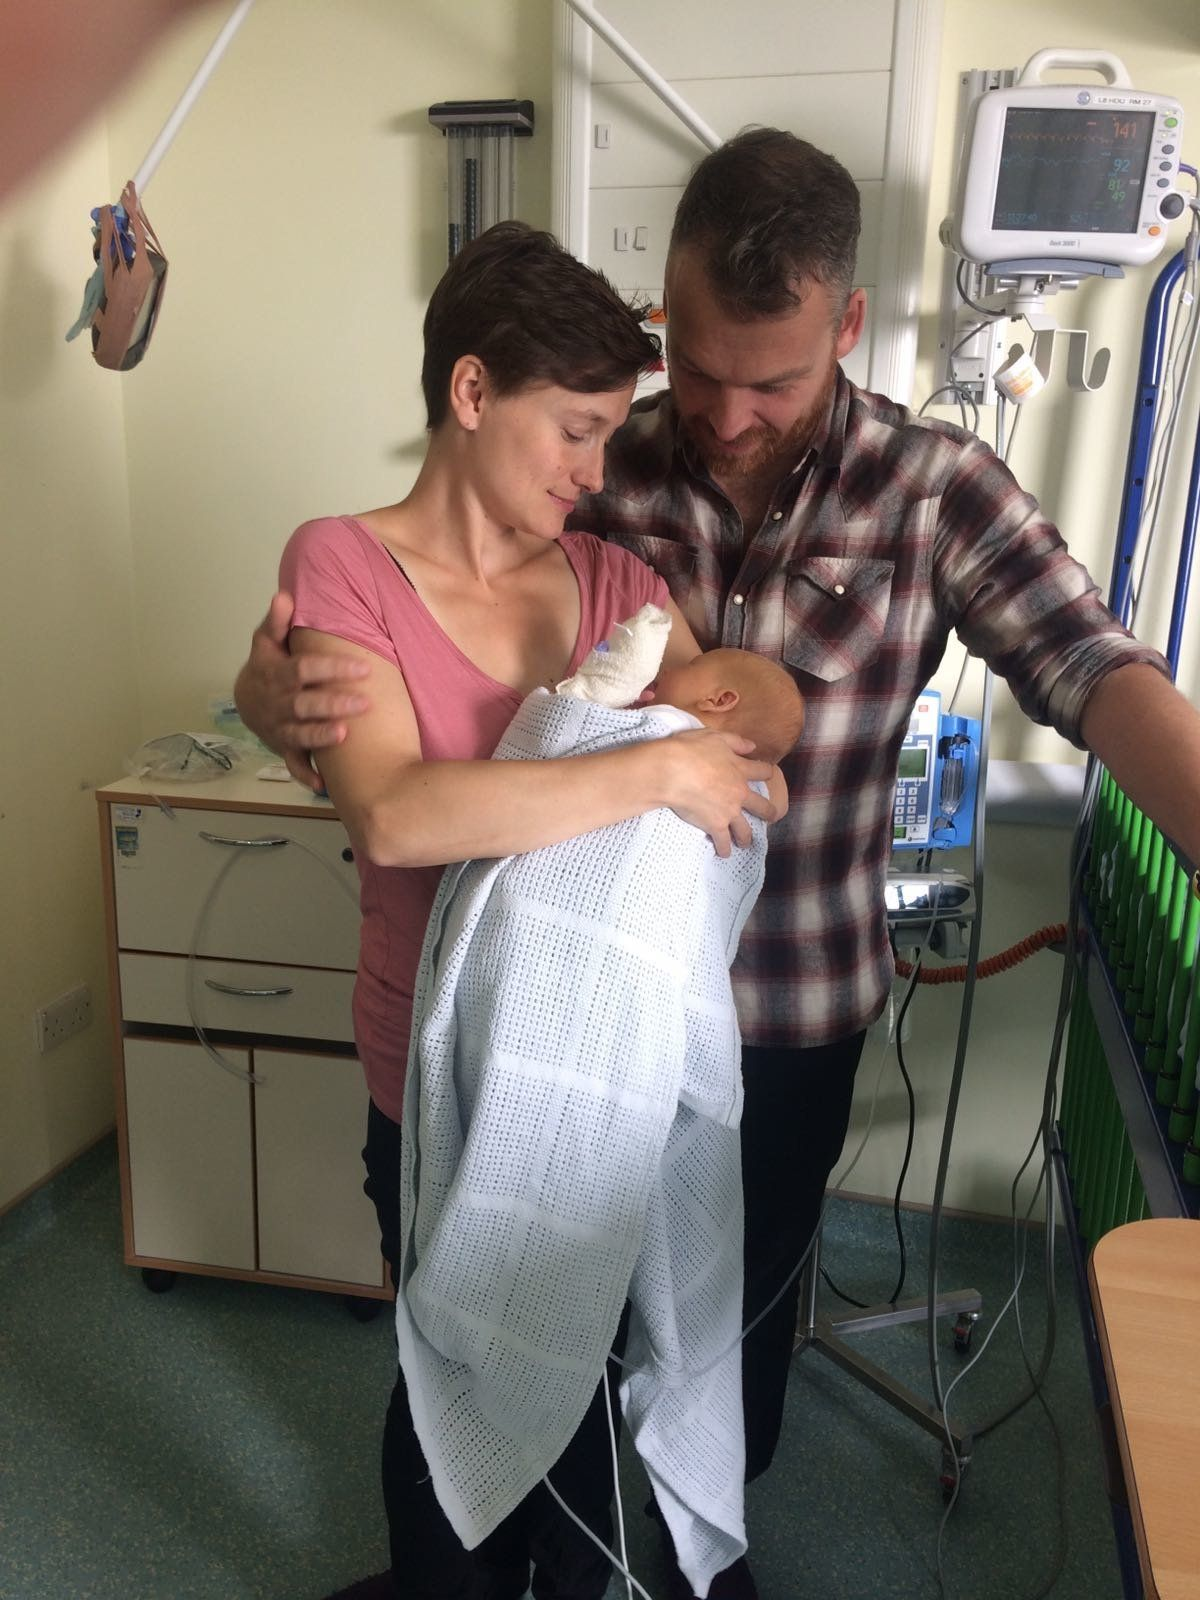 Sarah Higson and James de Malplaquet with their baby,